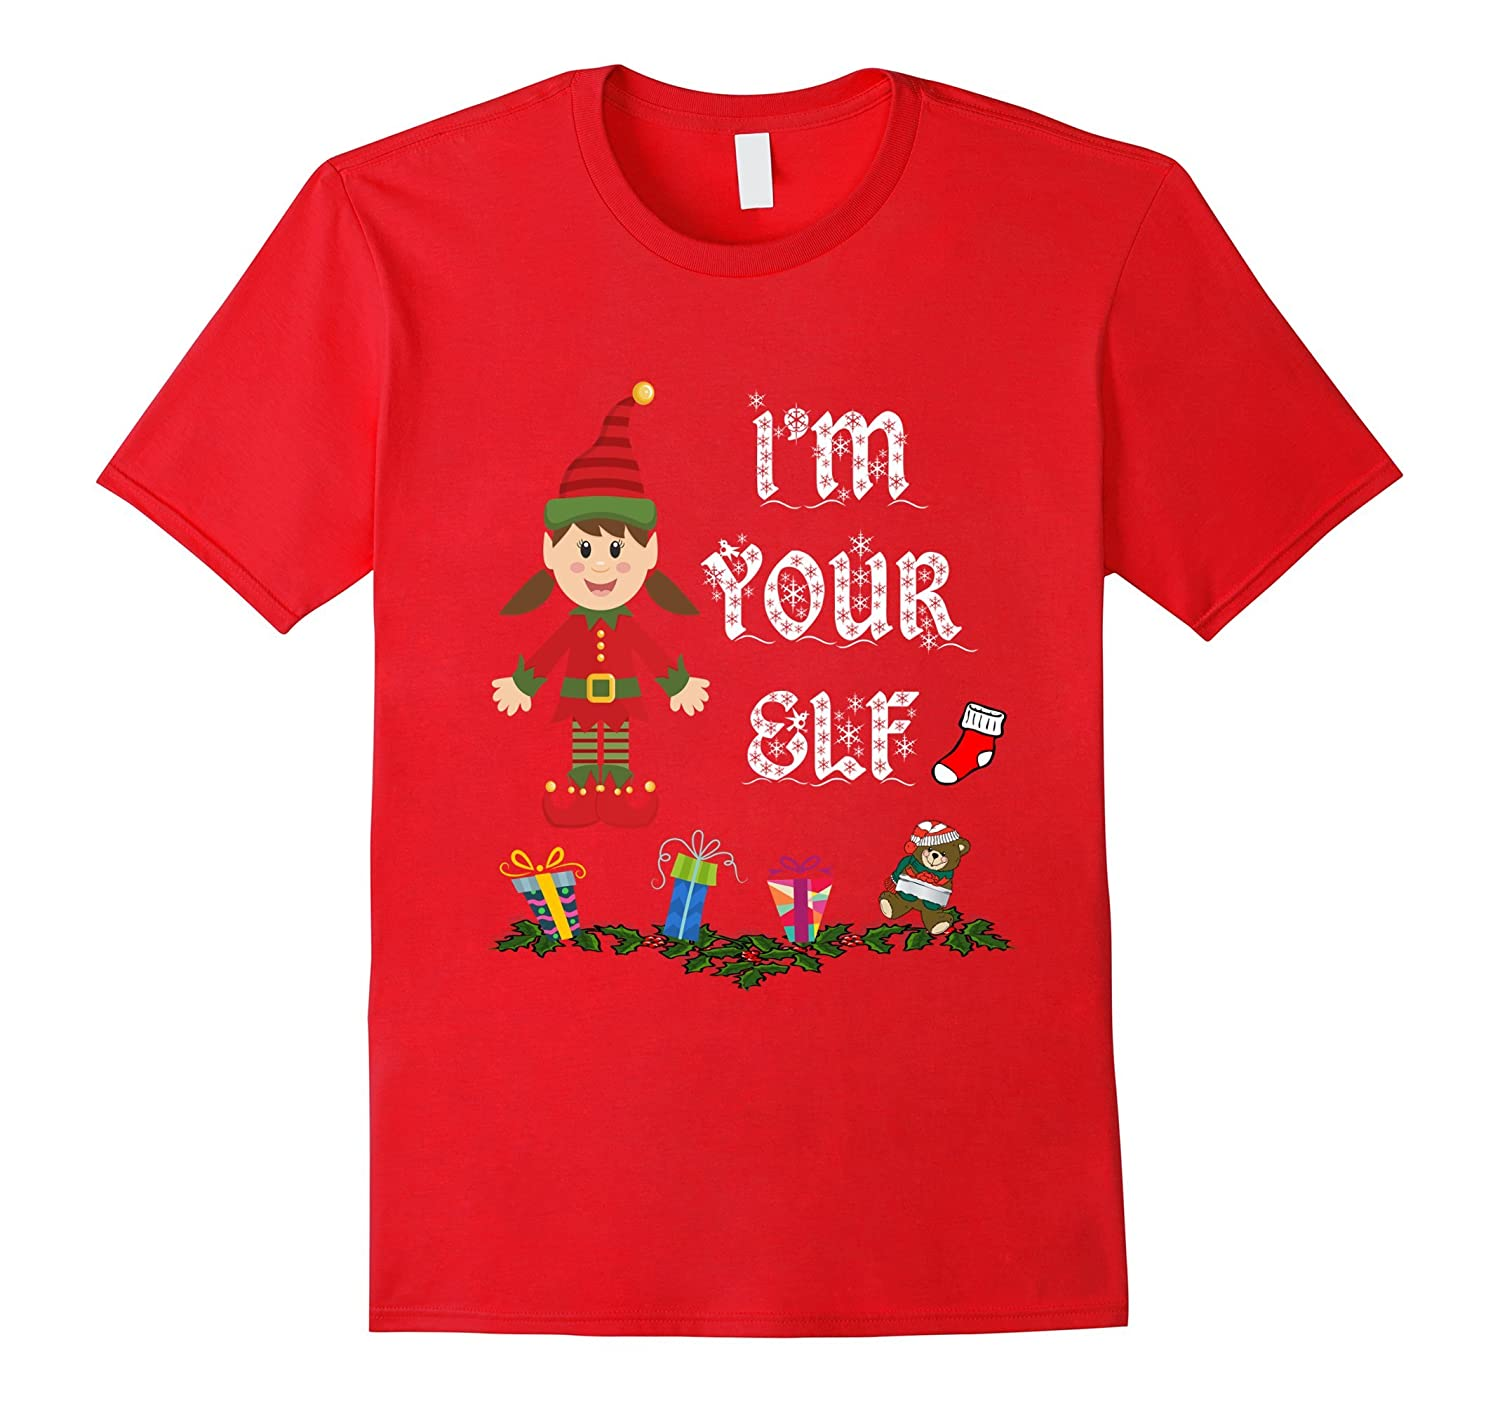 Matching Hers And His Christmas Funny Elf And Santa Shirts Anz Anztshirt